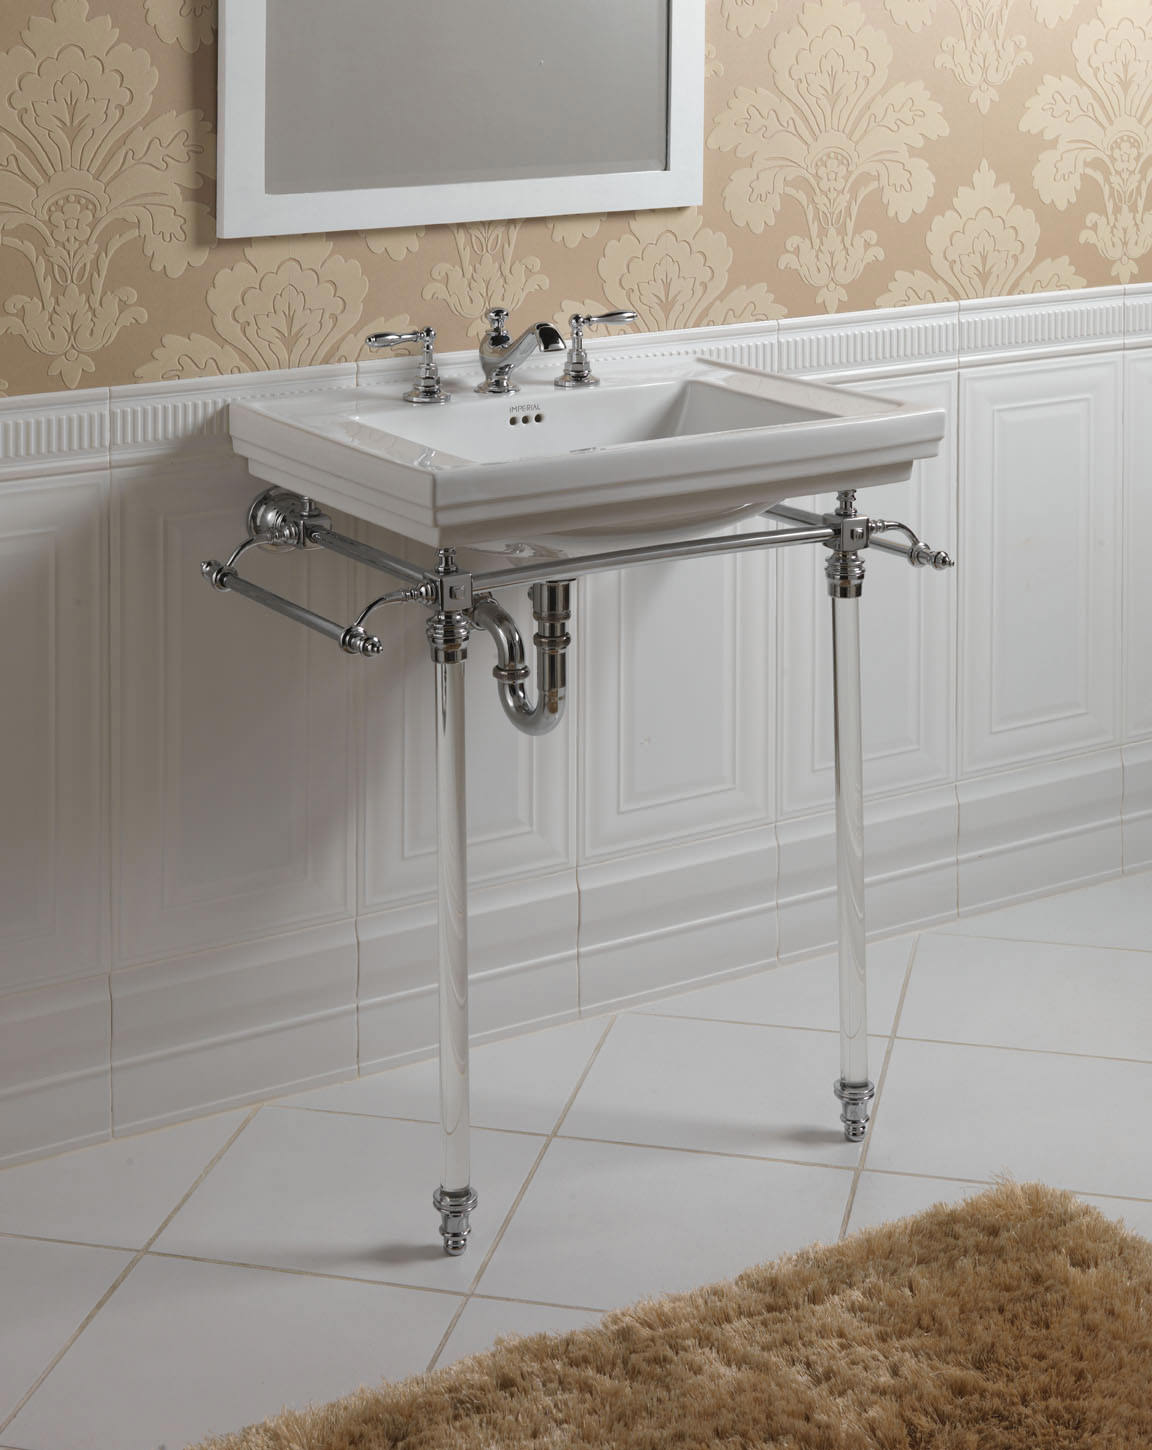 Imperial Hardwick Basin Stand And Astoria Deco Basin | ZXBS2600100 for Bathroom Basin Stands  588gtk